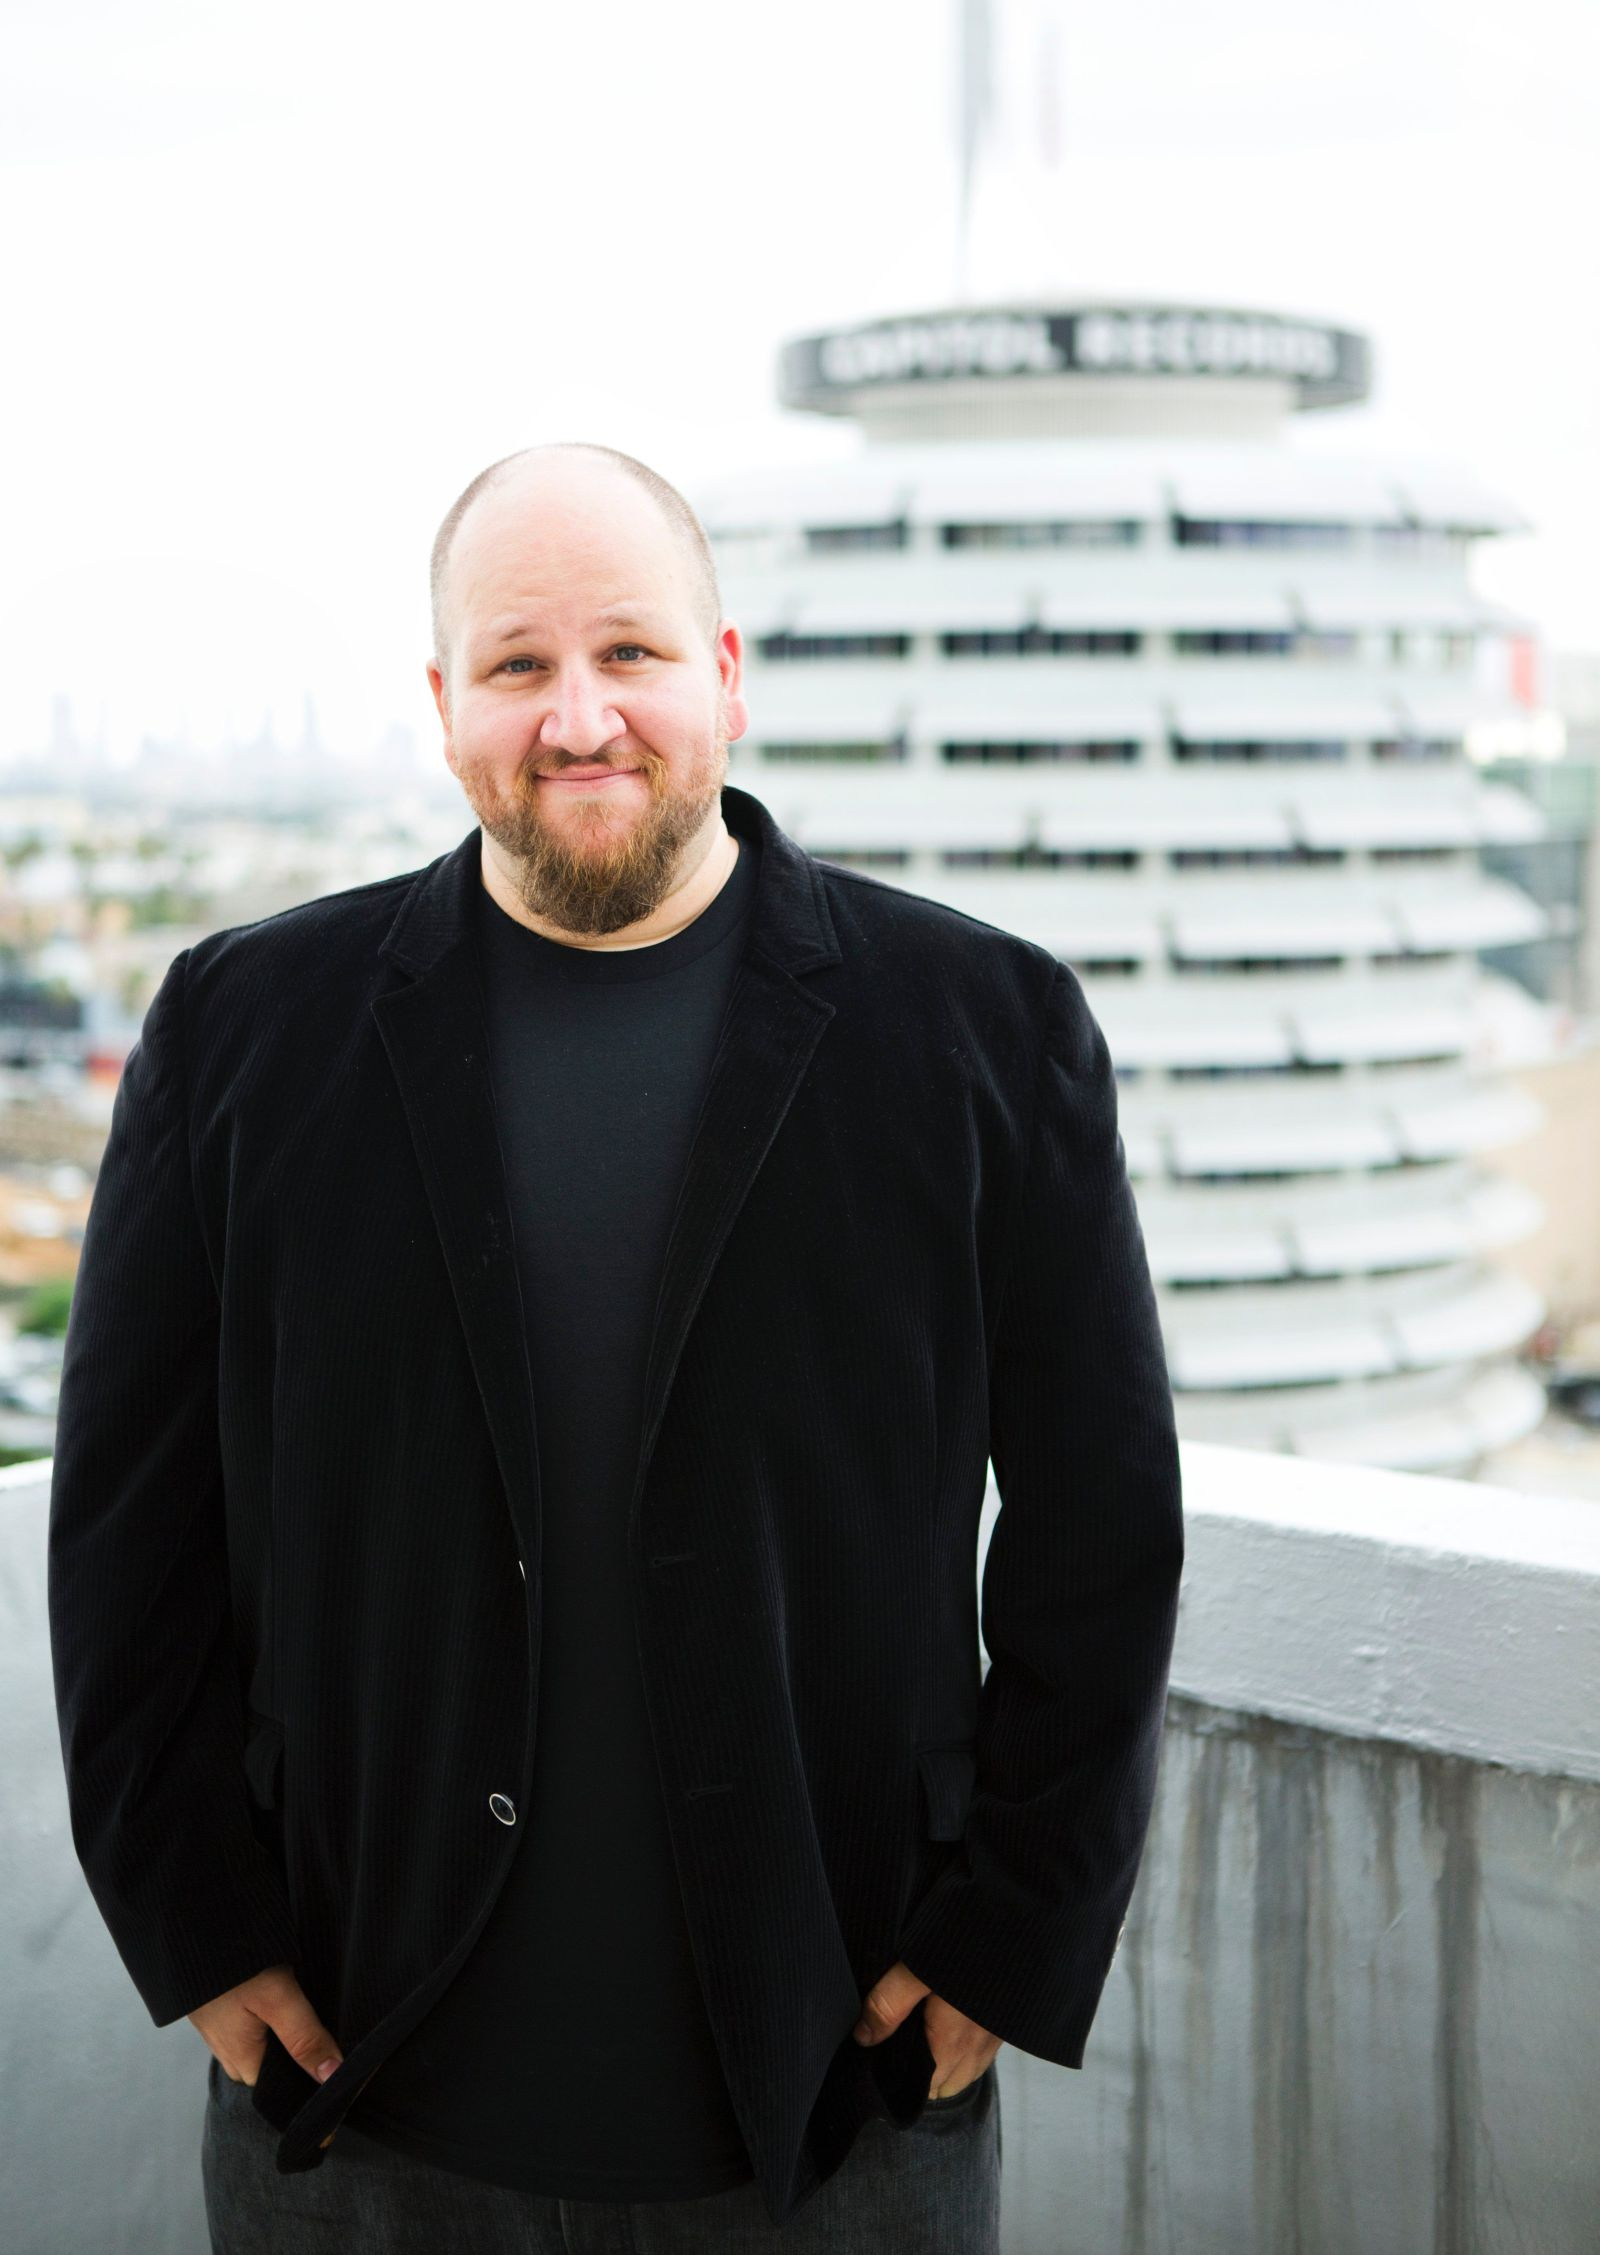 Stephen Kramer Glickman atop the AMDA Tower Building